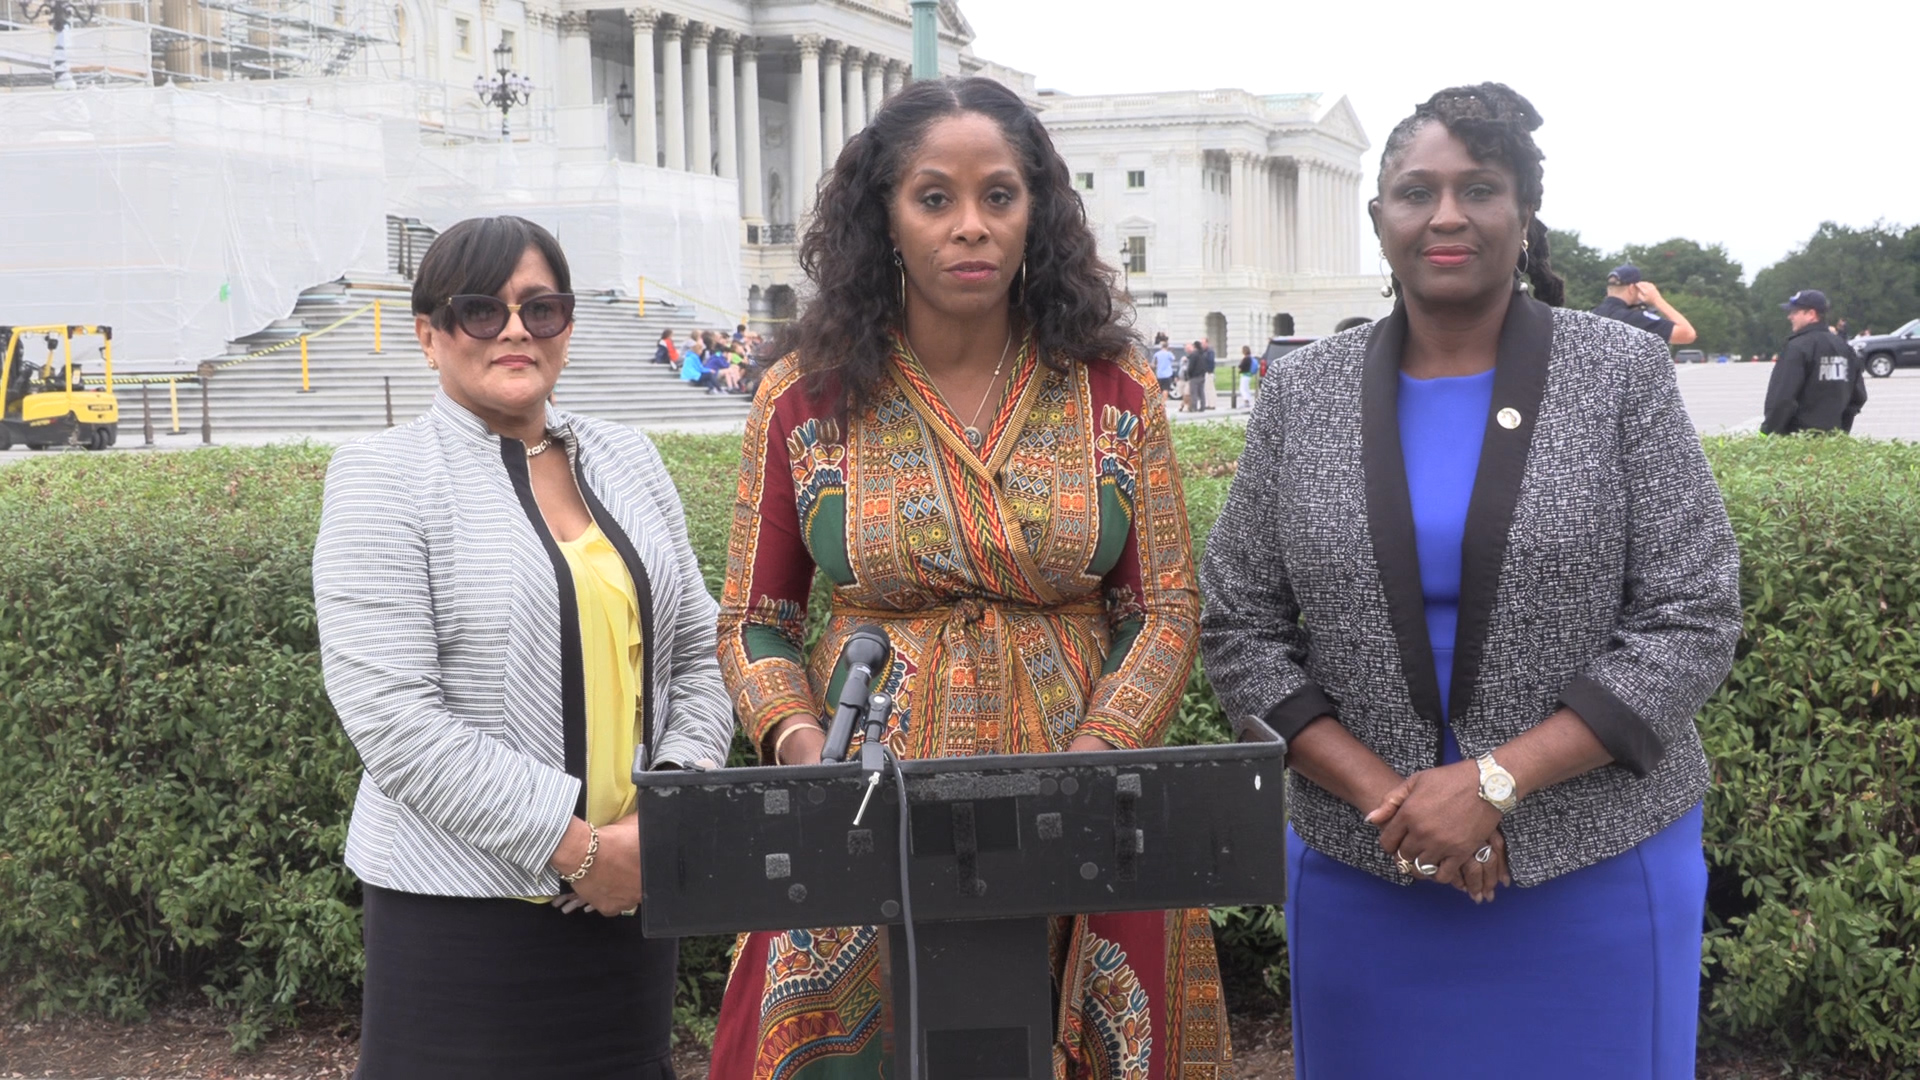 Plaskett, V.I. teacher's union leaders in D.C. pushing for school recovery funding